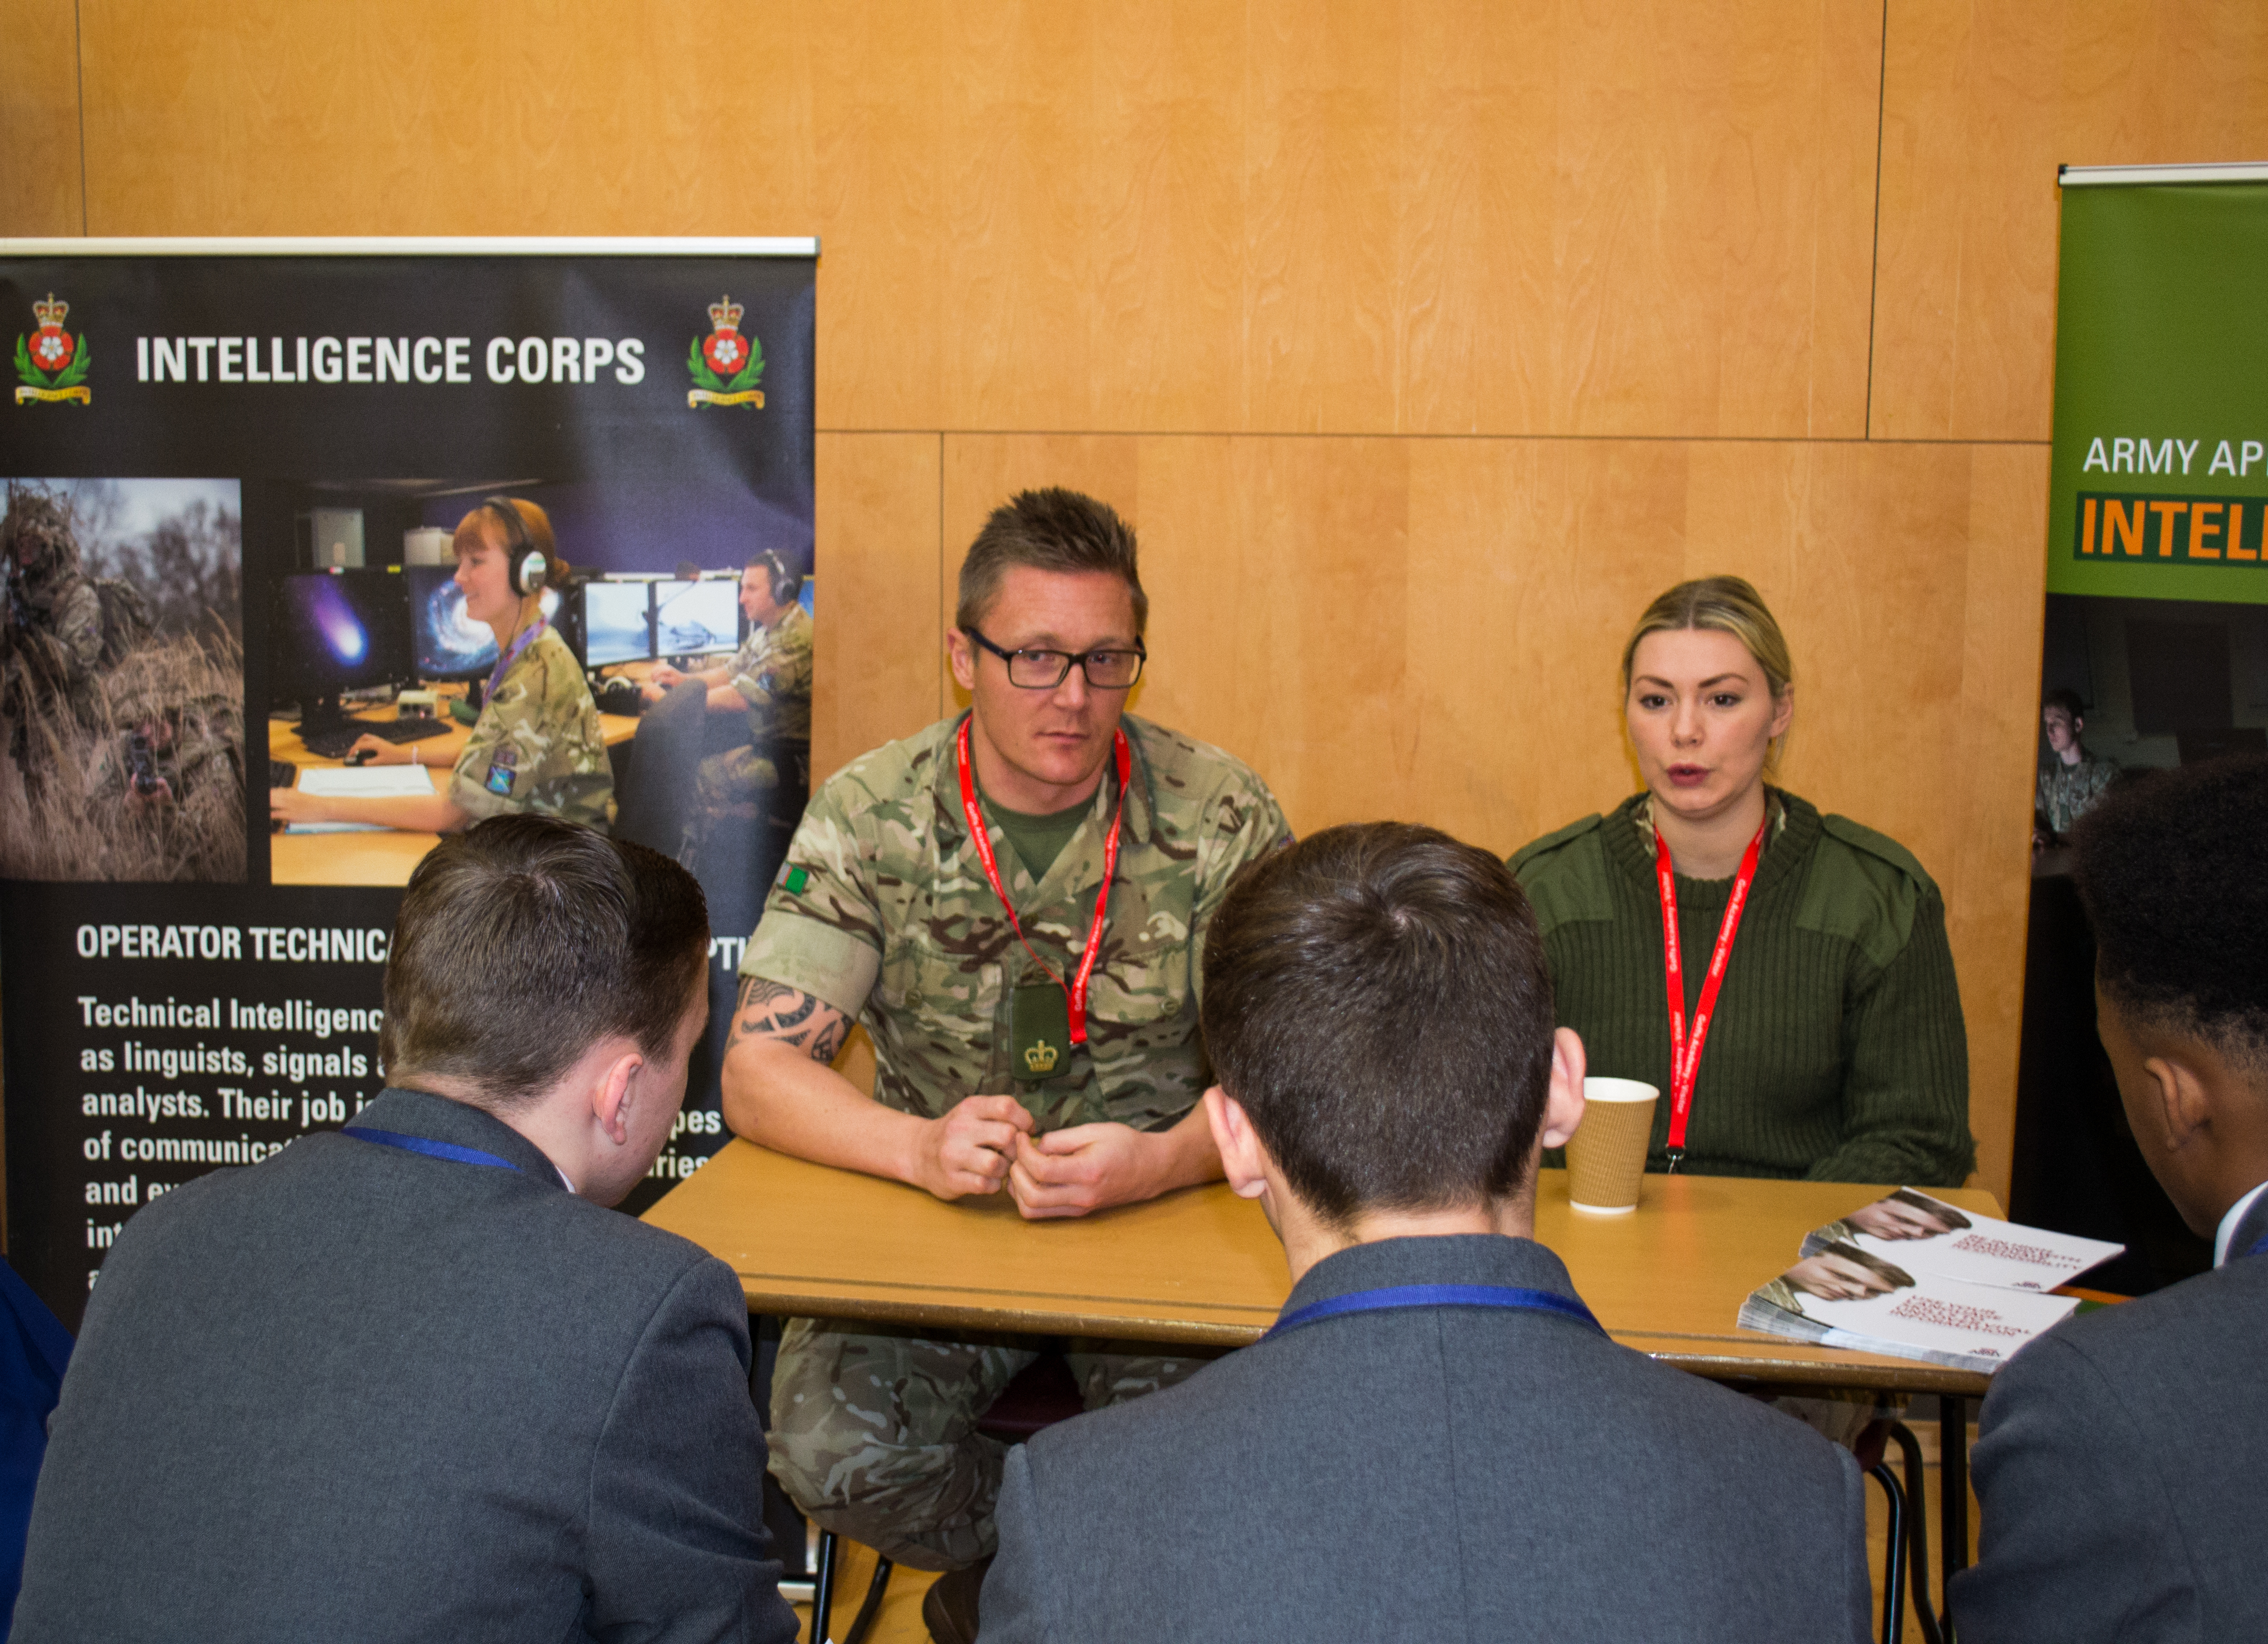 YC Hertfordshire's Careers Event Supports Cheshunt Young People to Plan Their Future Career Paths